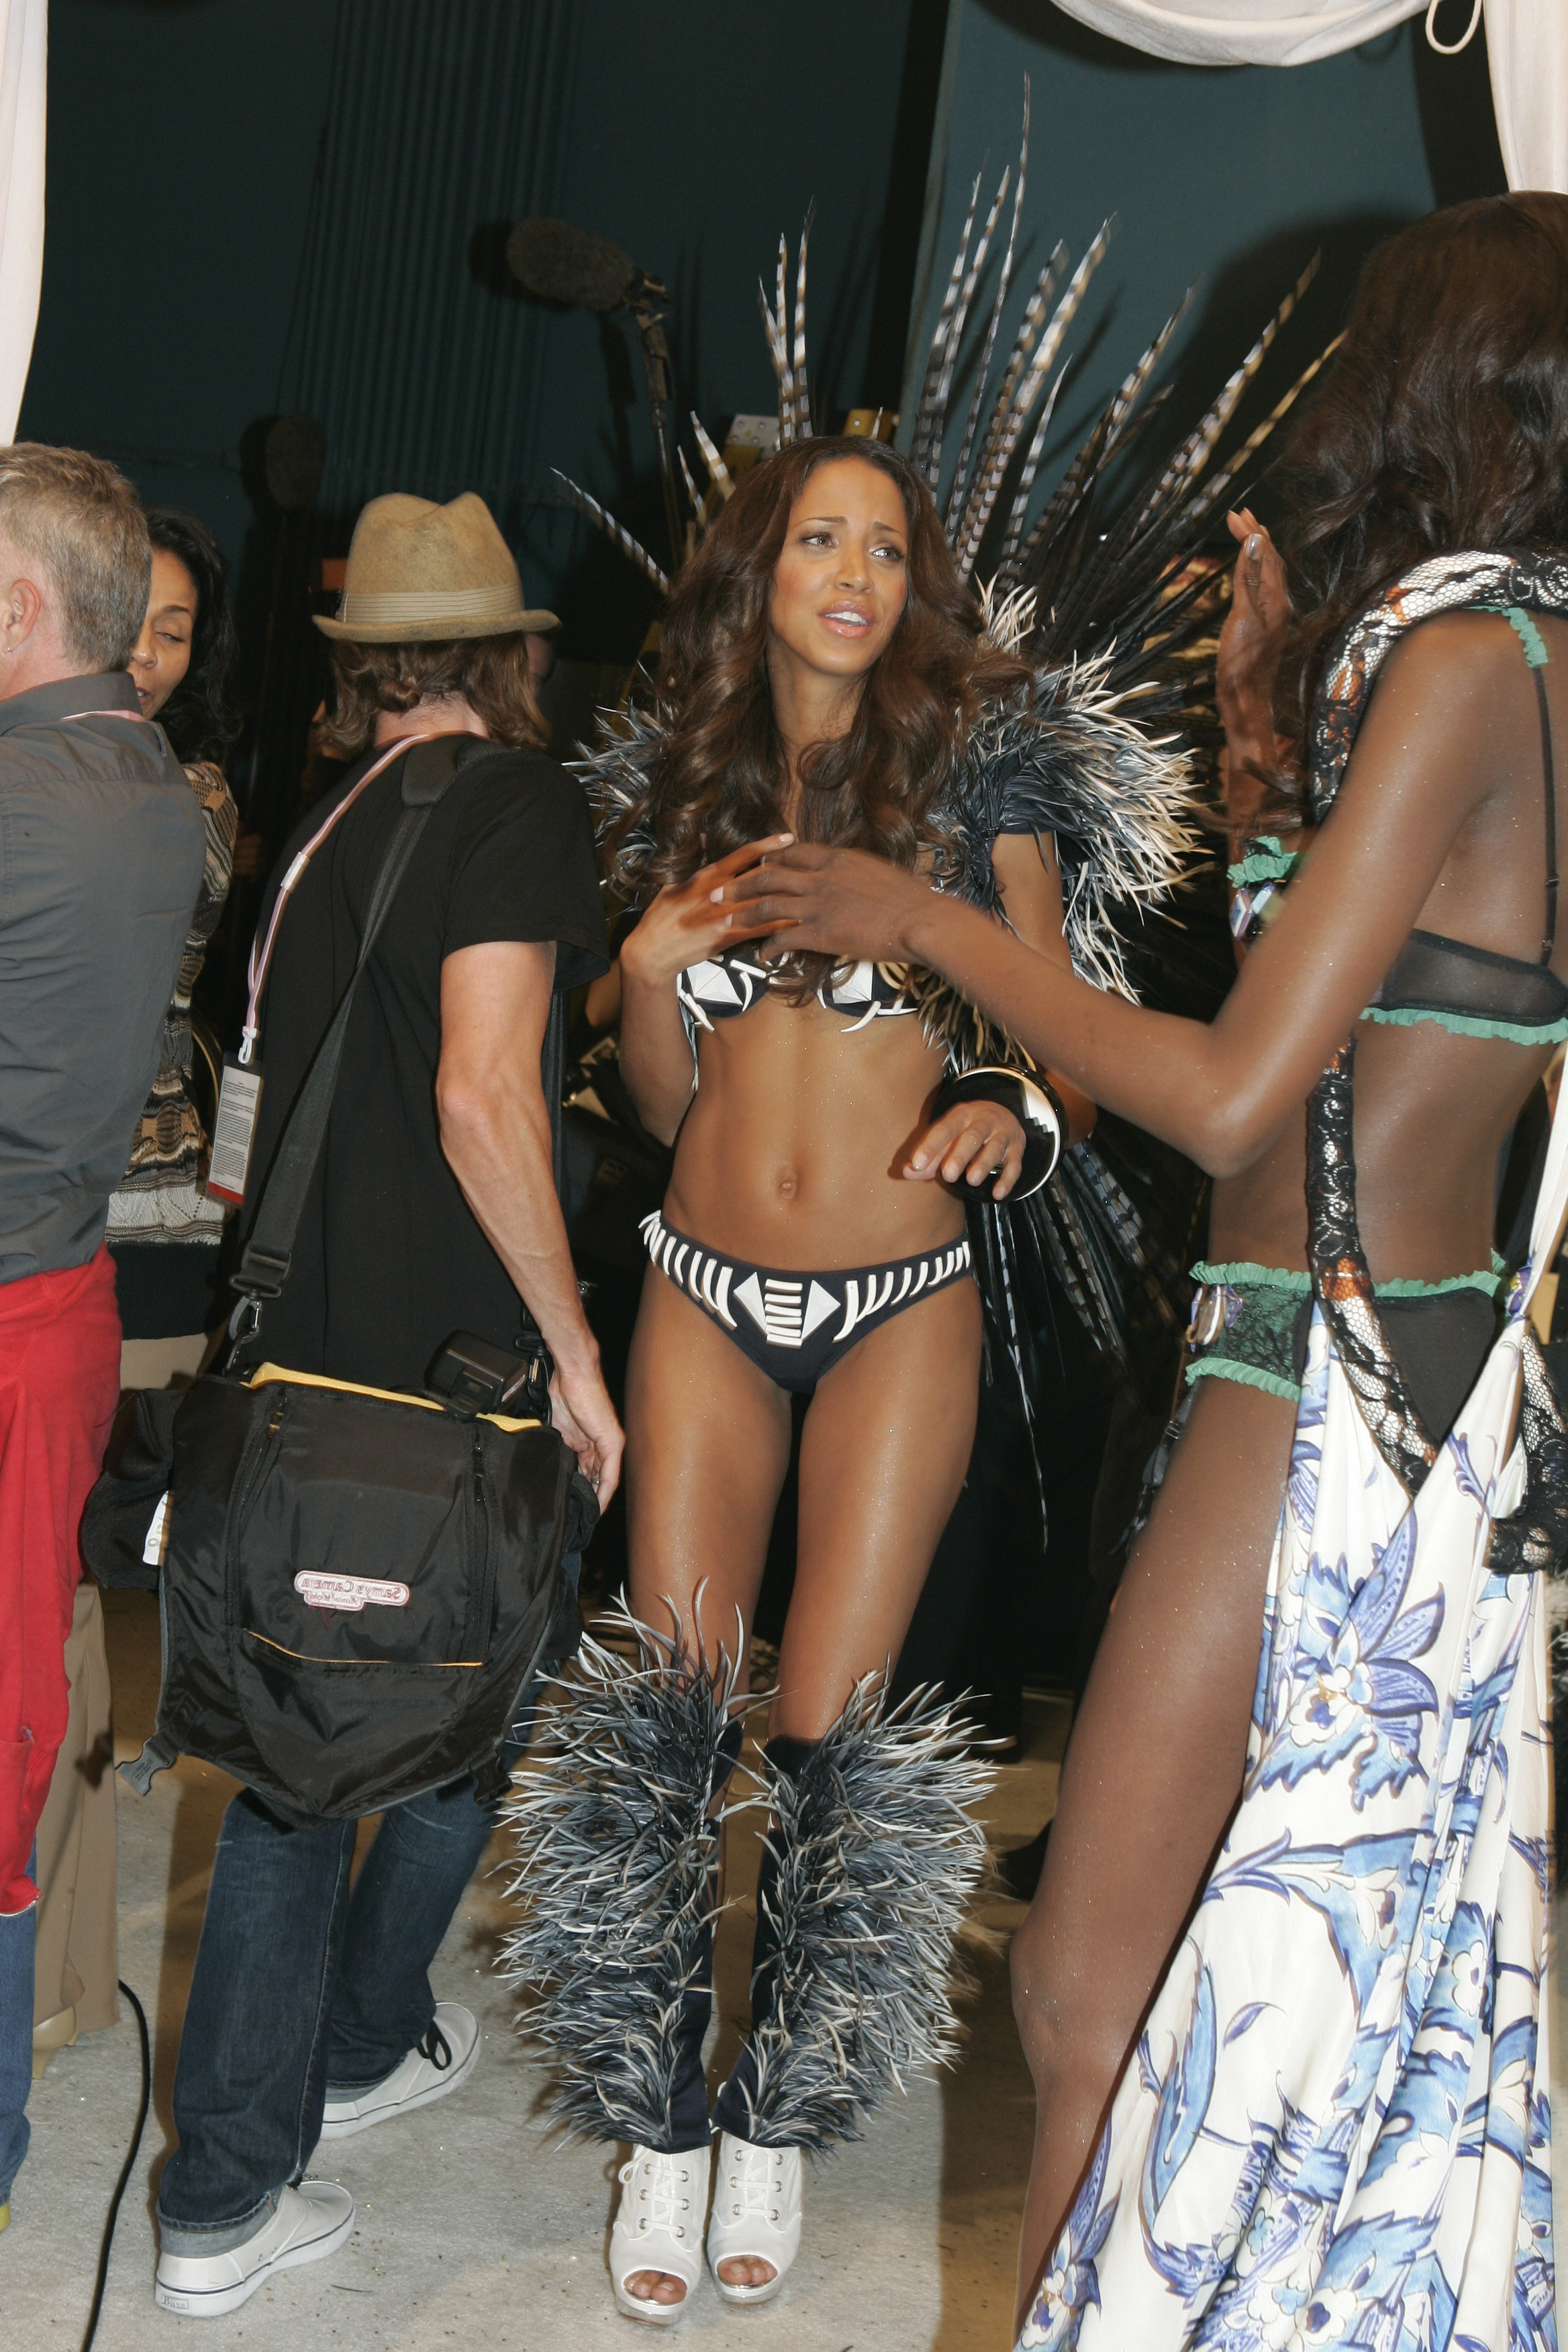 Backstage at the Victoria's Secret Fashion Show